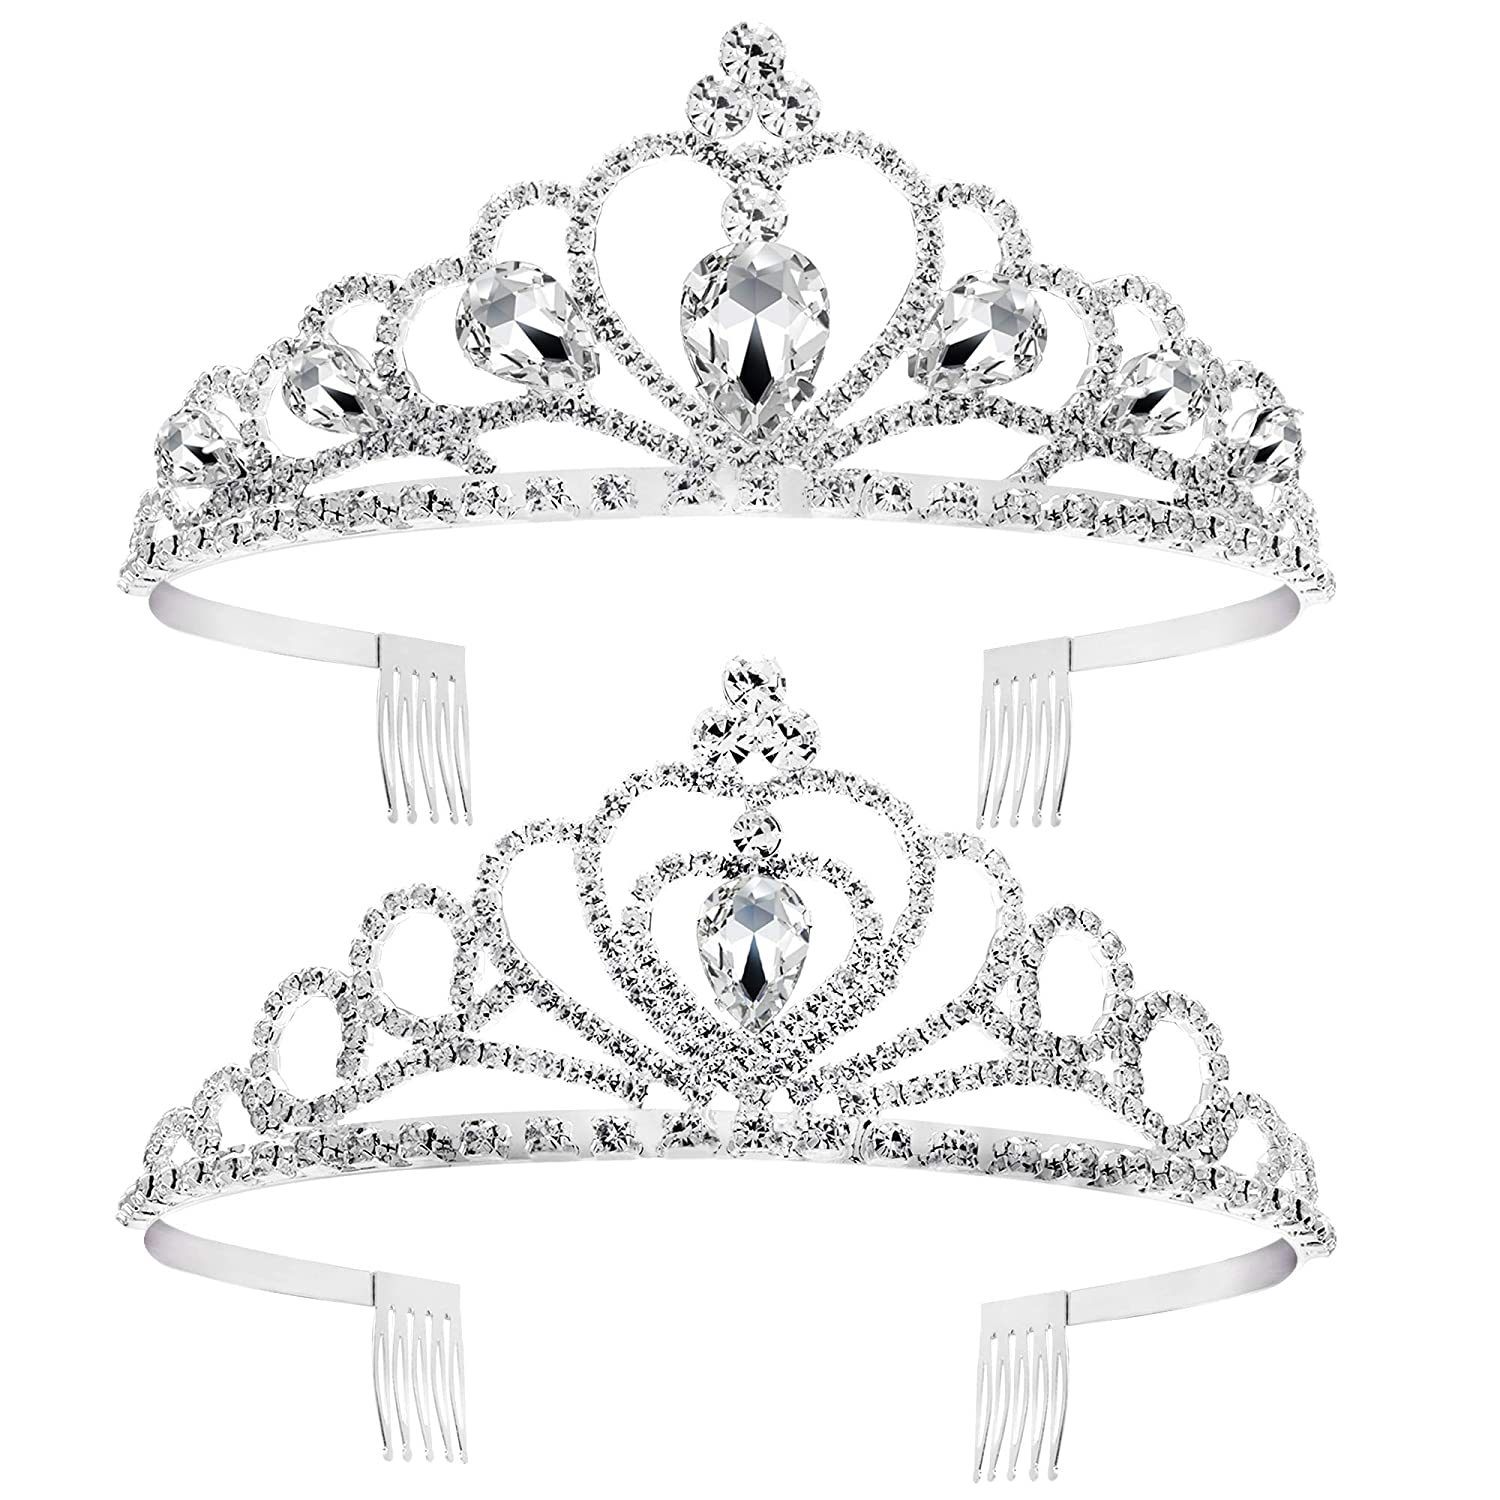 headpiece hair accessories bridal tiara accessory Silver crown silver color dresscode wedding wreath gift for girl berries in snow